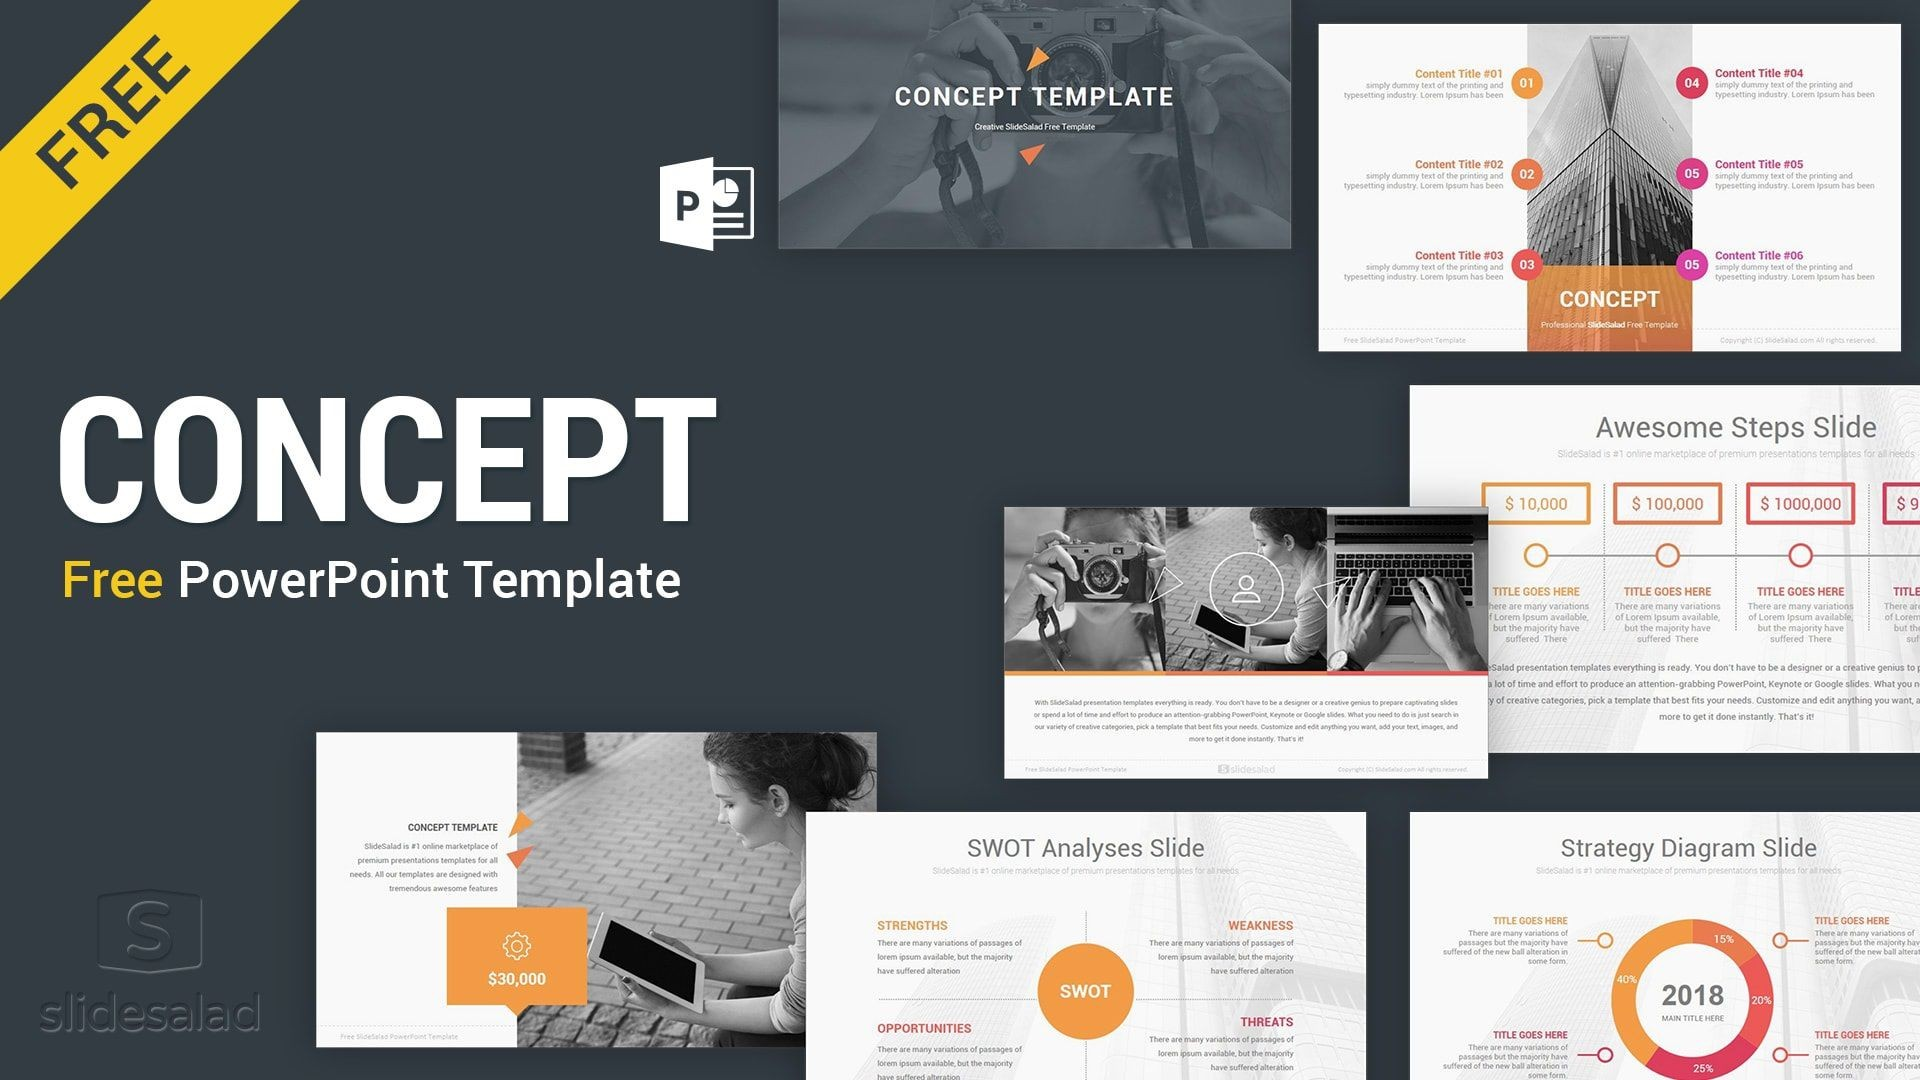 004 Awesome Free Download Powerpoint Template Idea  Templates Medical Theme Presentation 20181920